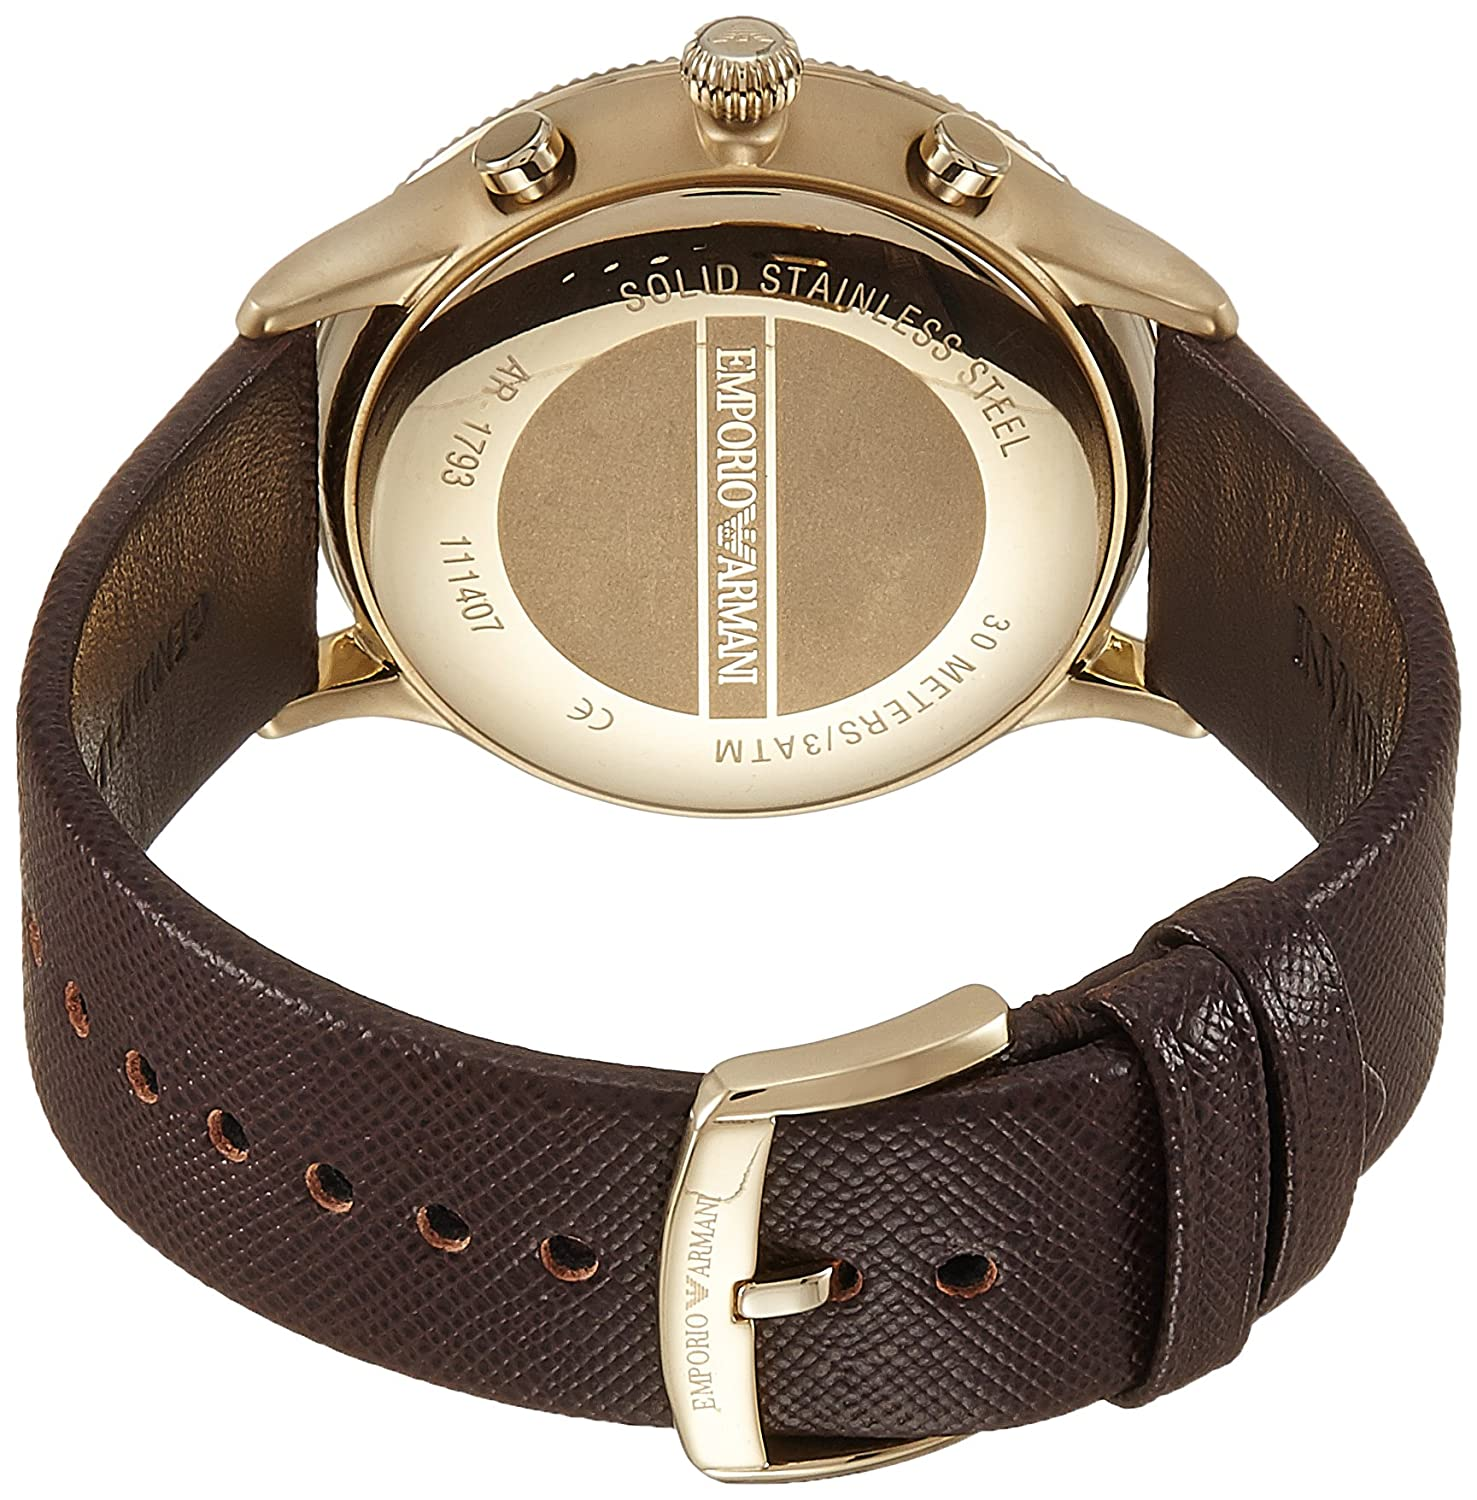 Amazon.com: Emporio Armani Mens AR1793 Dress Brown Leather Watch: Emporio Armani: Watches